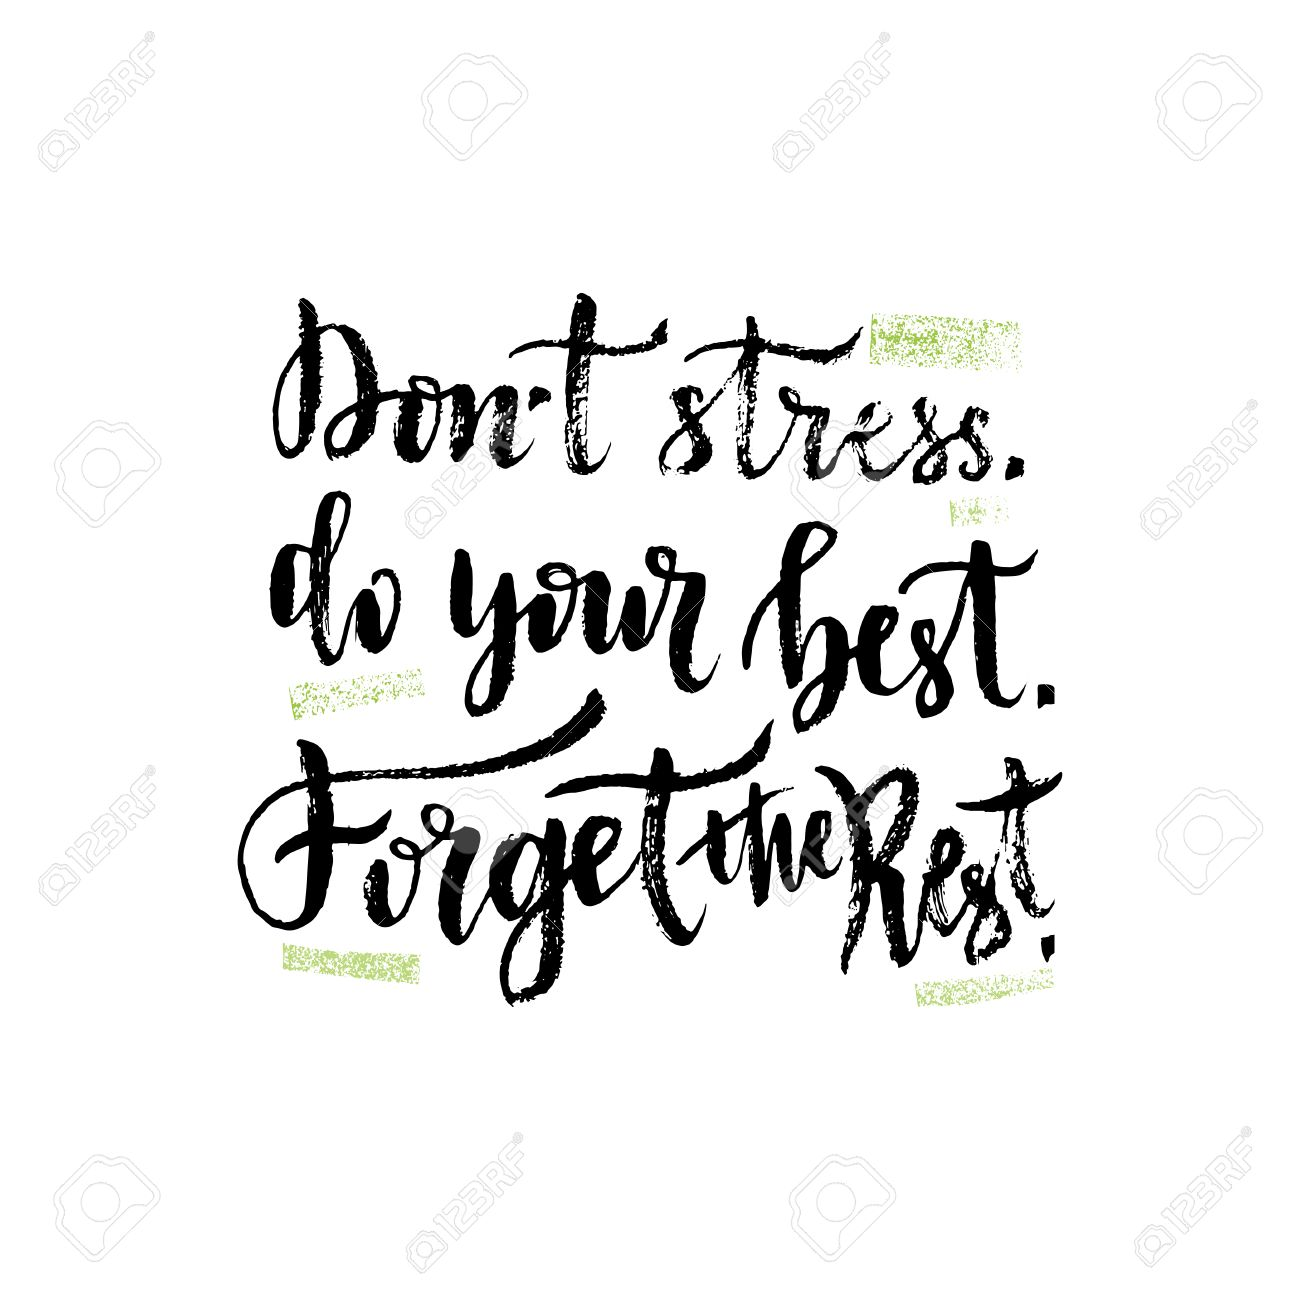 Stress Quote Hand Letteringinspirational Quoteillustration With Brush